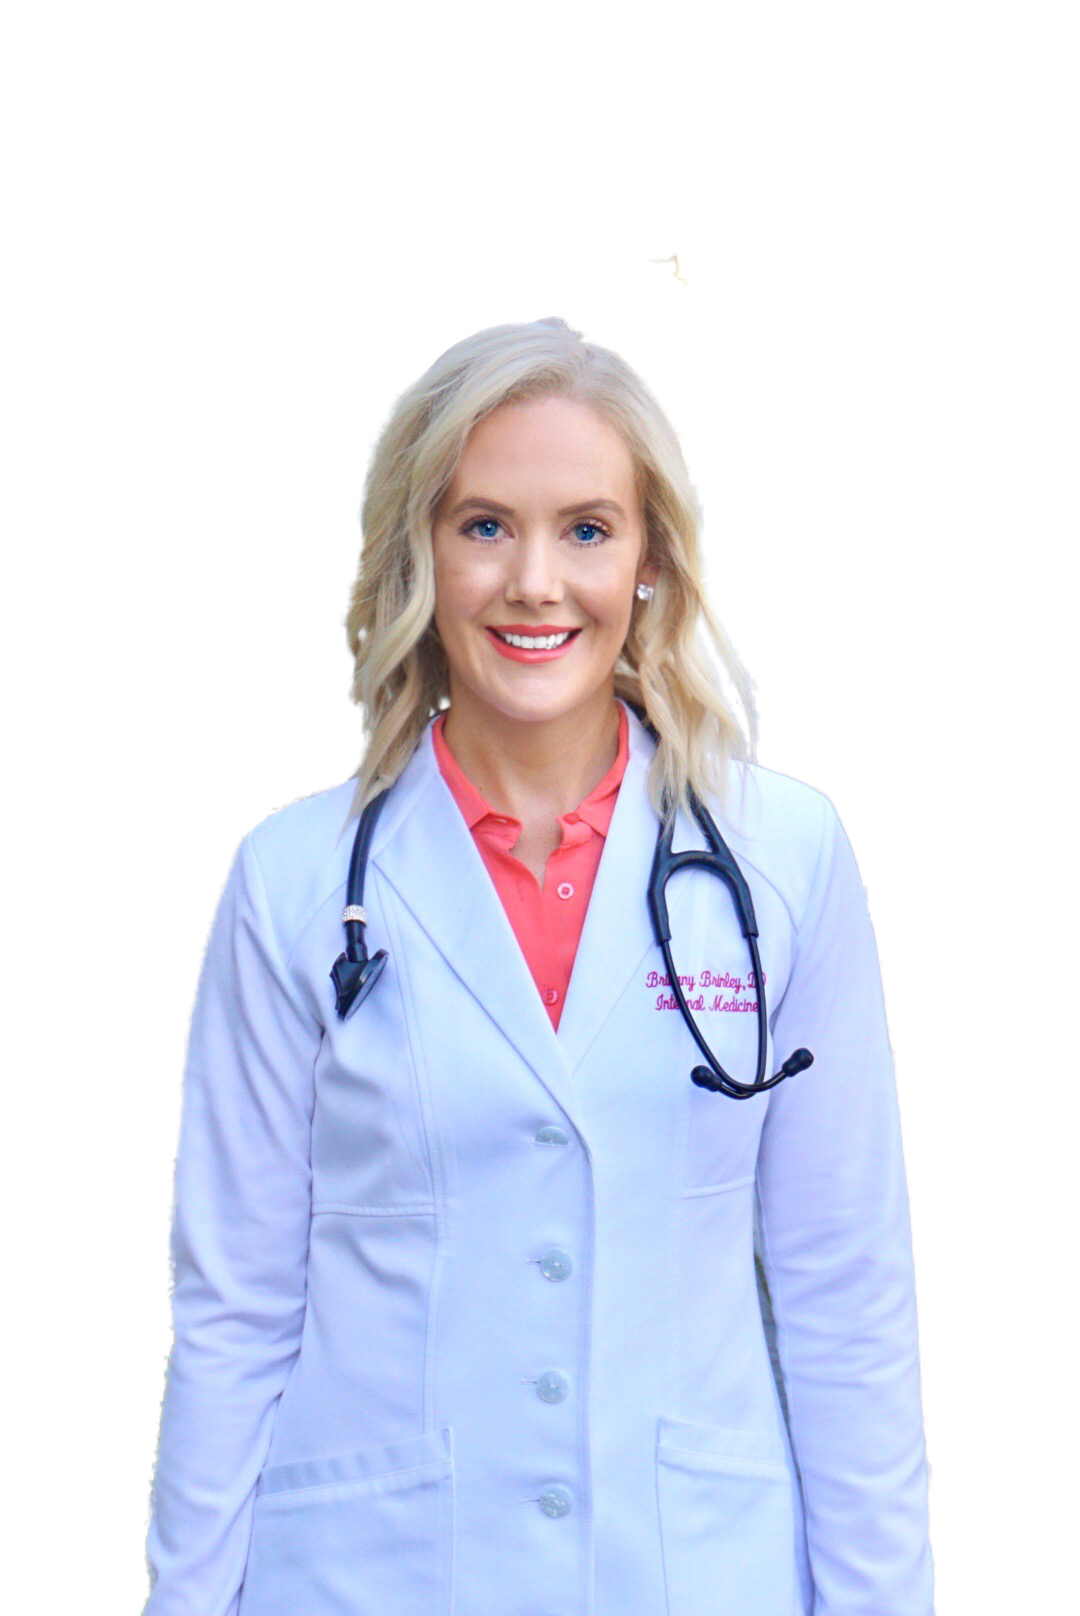 Dr. Brinley Medical Concierge | LA & Beverly Hills | Home Medical Spa Services and Medicine